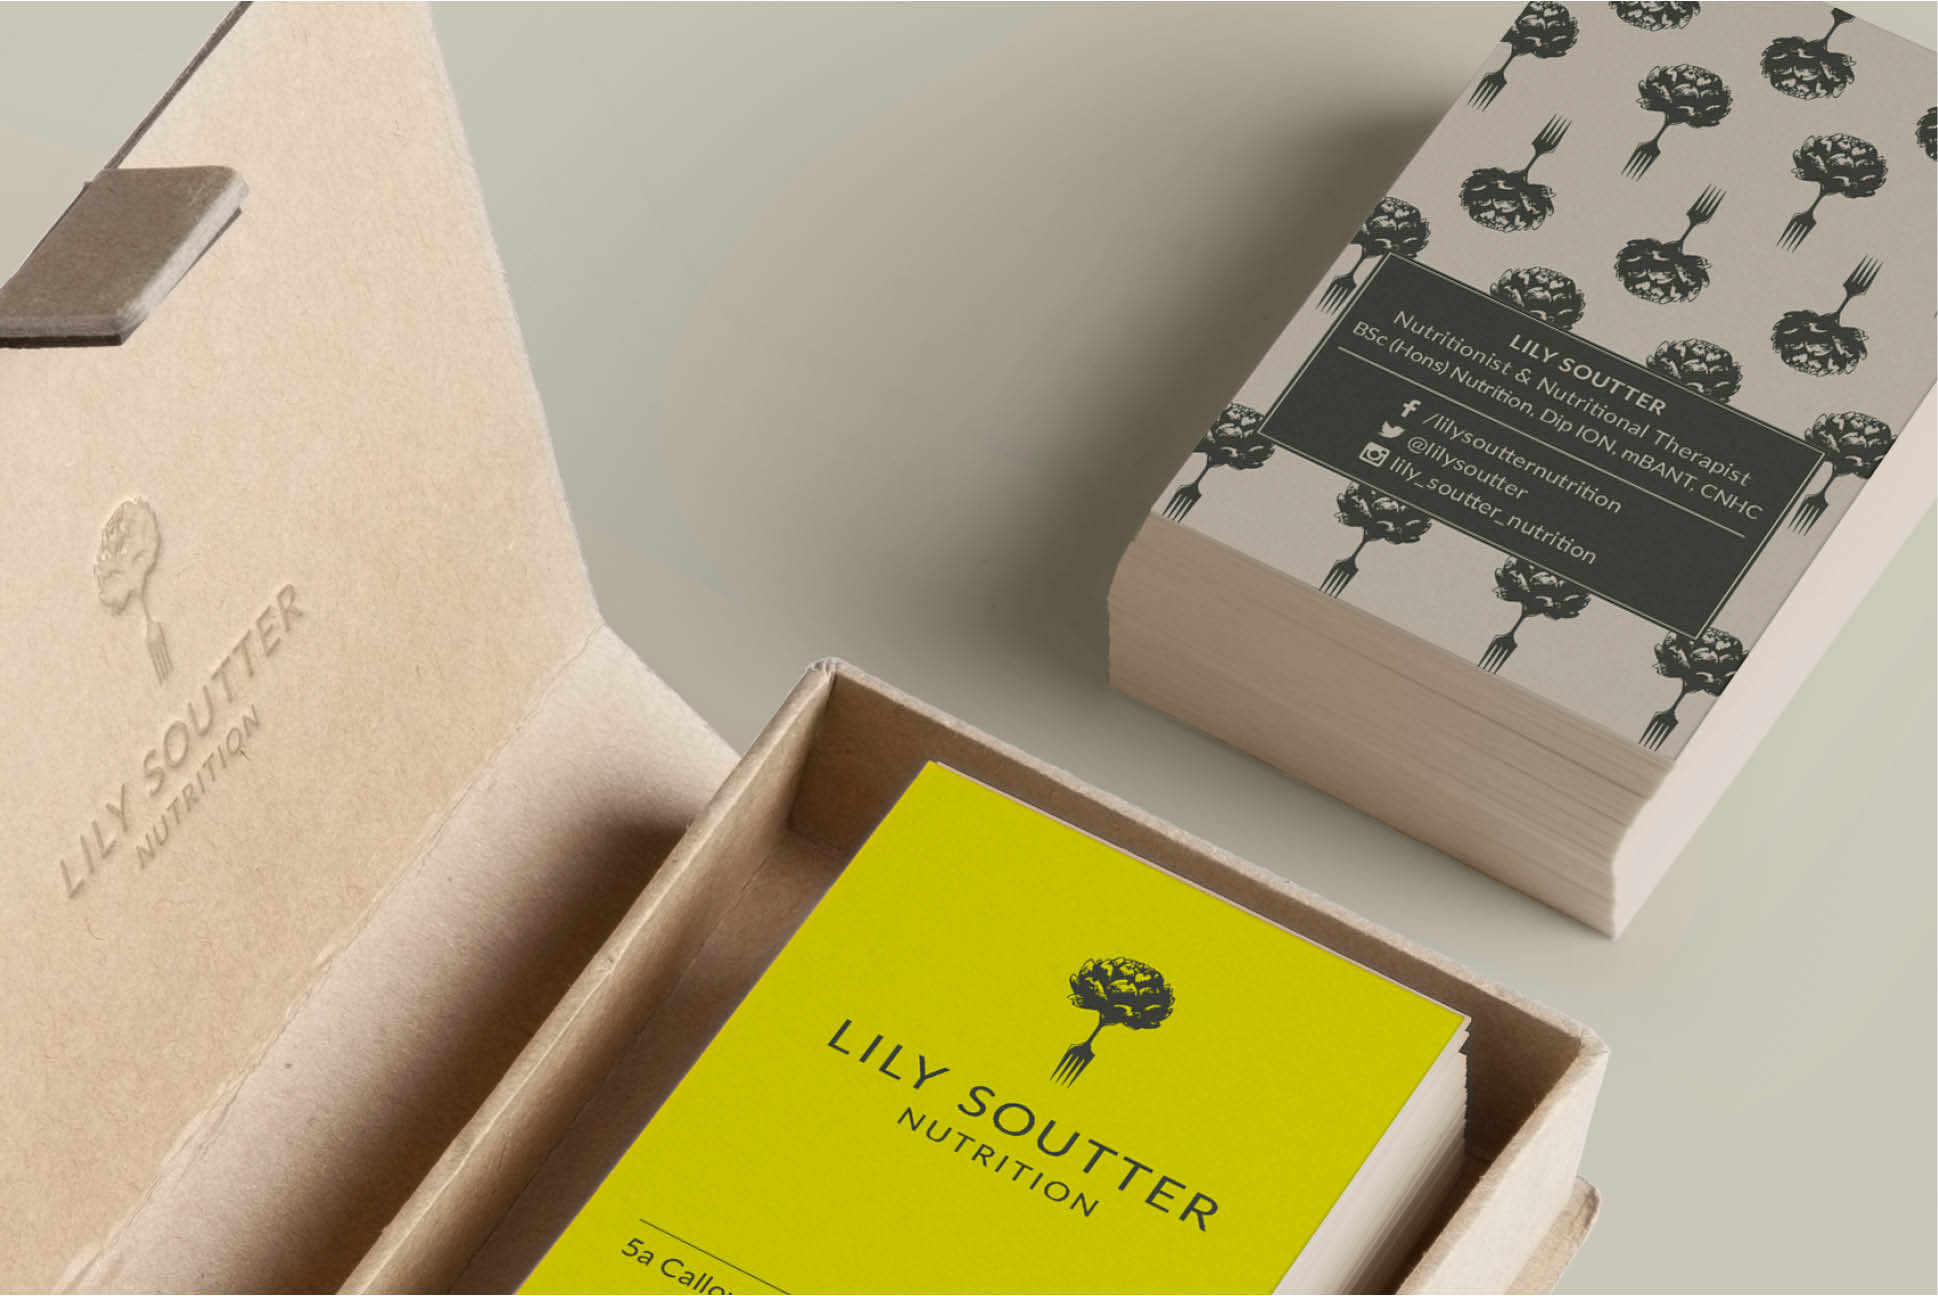 Lily Soutter Business Cards | Branding | Independent Marketing | IM London - London Branding Agency